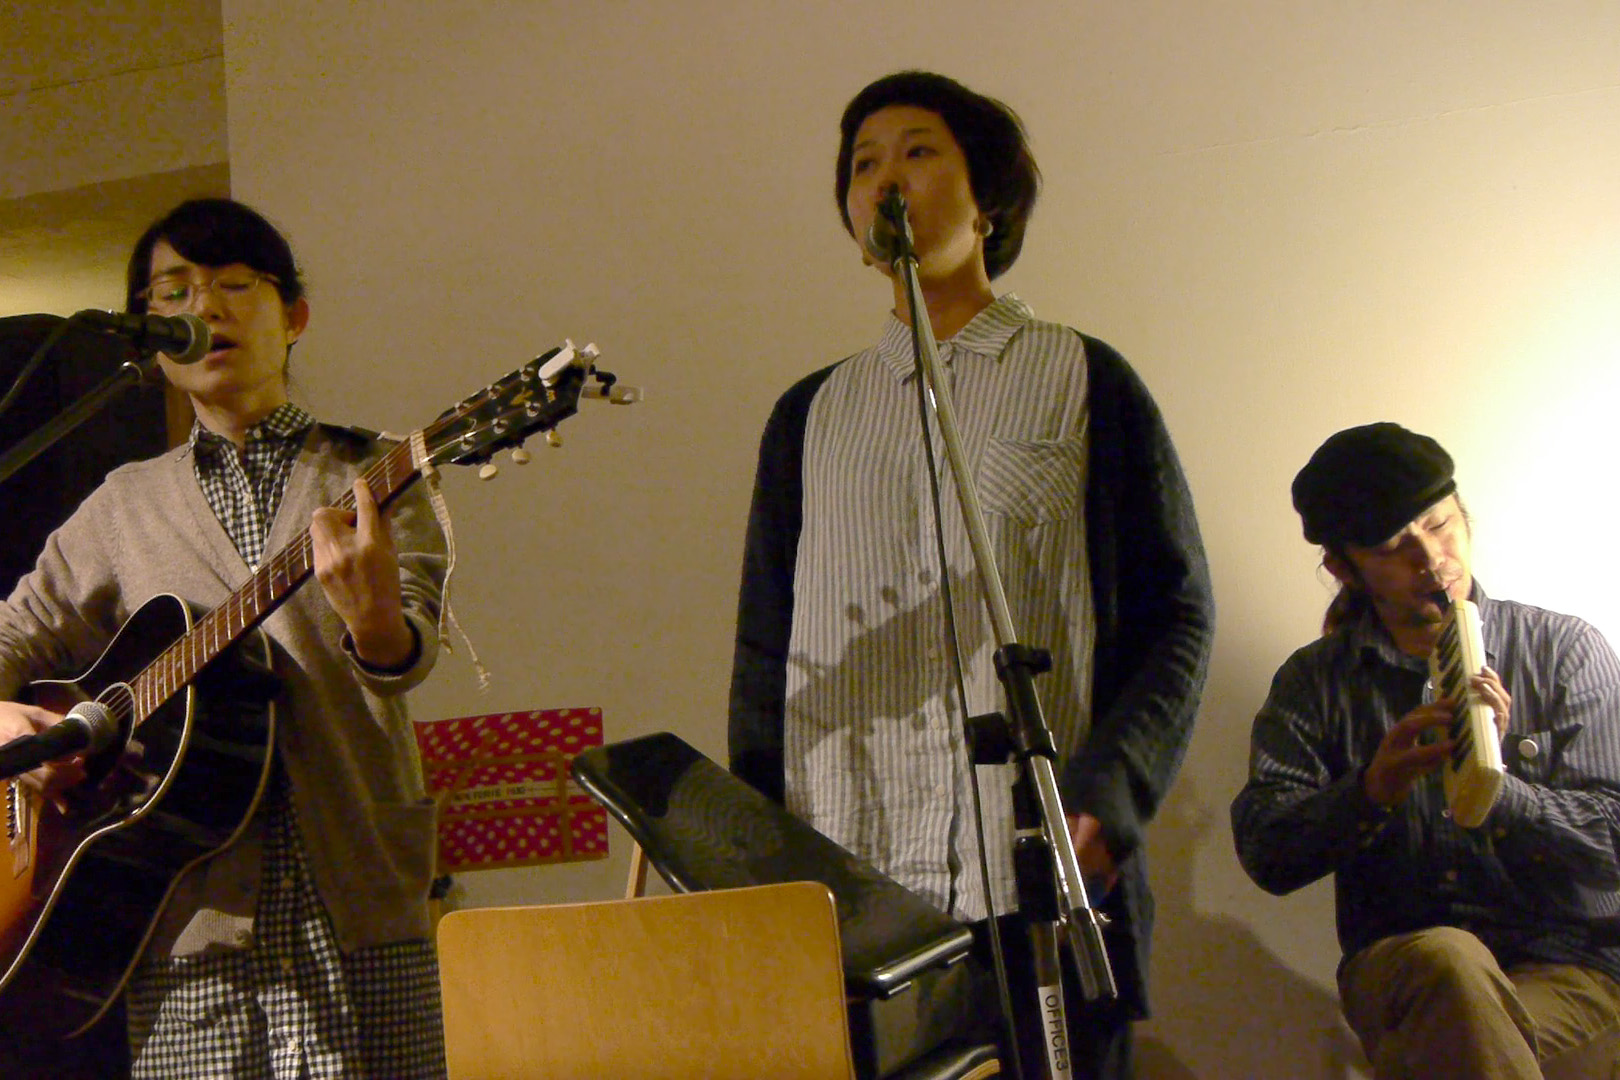 萬人音樂堂Presents レコ発ライブツアー in 沖縄 2012 OKINAWA HARMLESS @ 沖縄 Cafe & Dining Bar THREE_c0000587_19485638.jpg